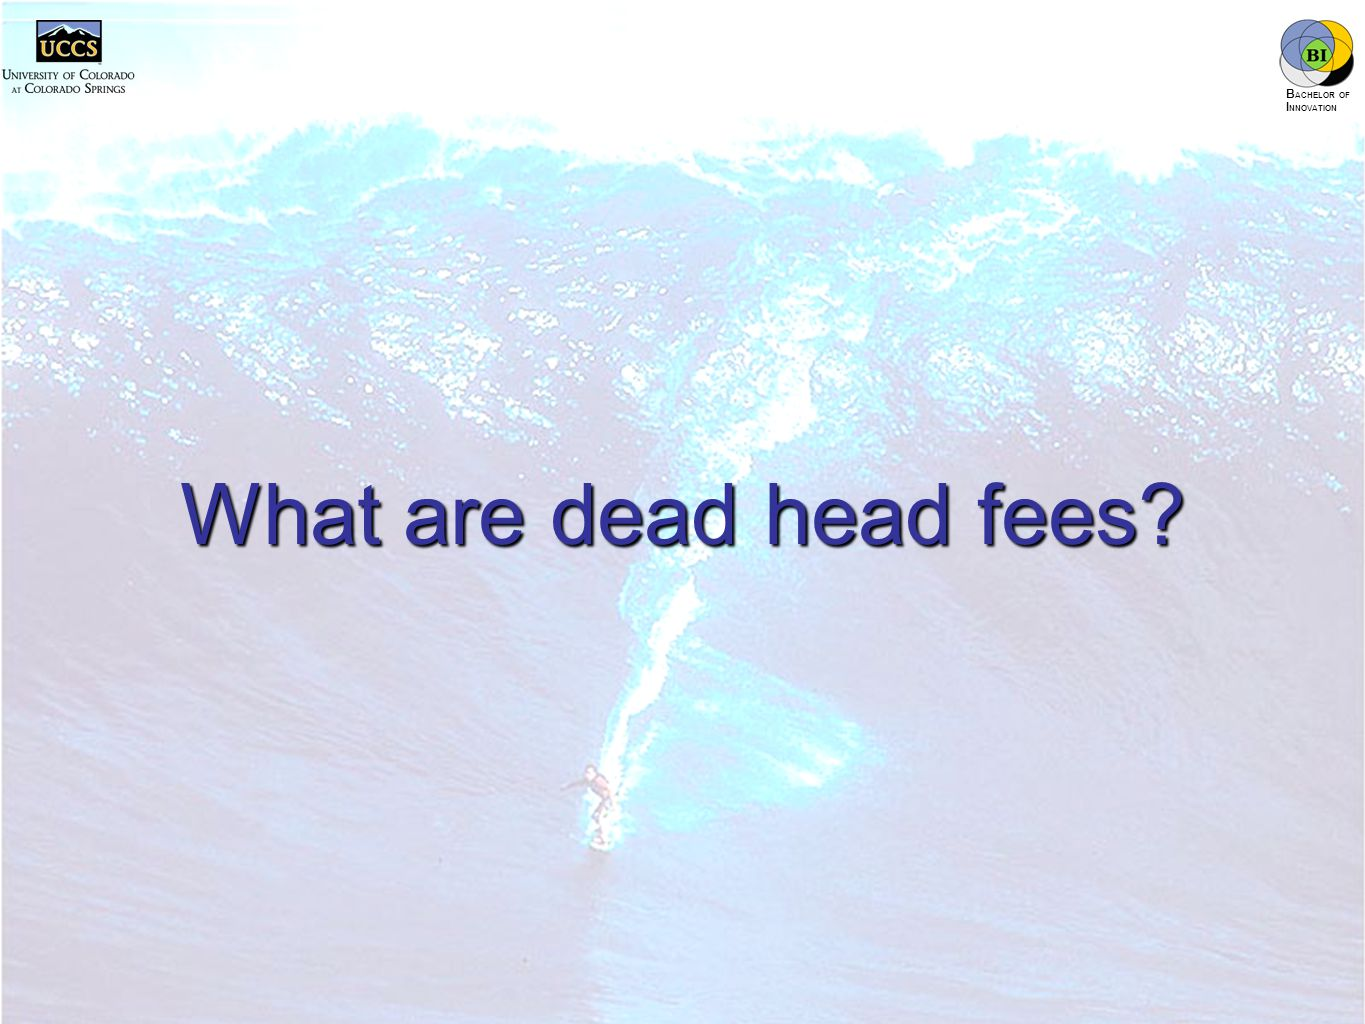 innovation.uccs.edu B ACHELOR OF I NNOVATION ™ What are dead head fees?